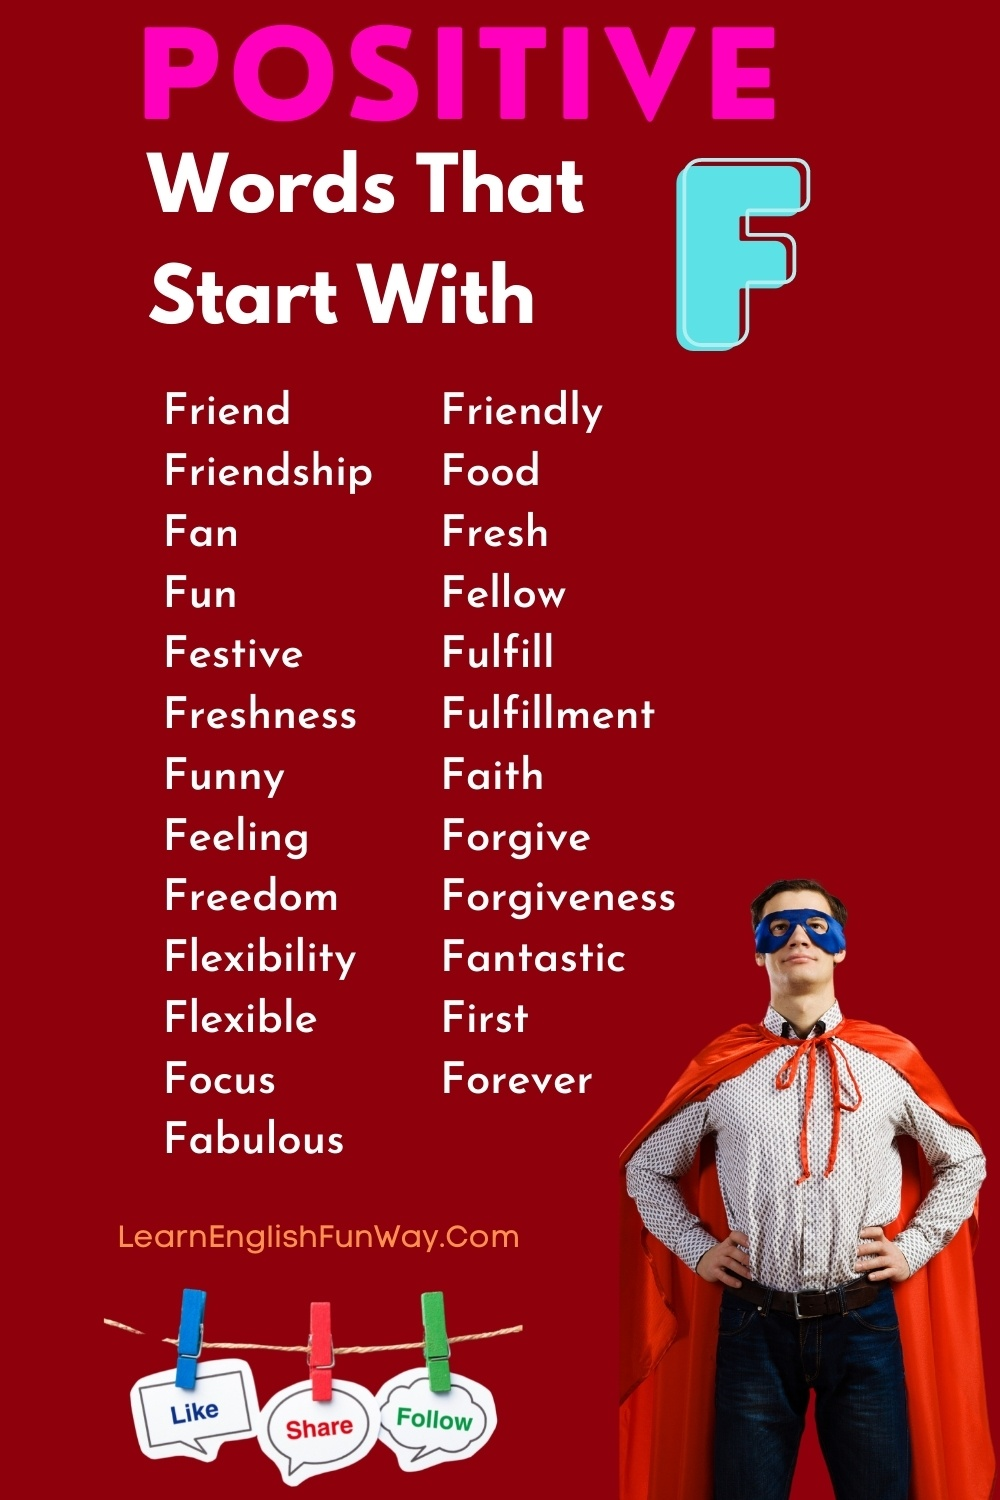 list of positive words that start with F - Positive Words That Start With F